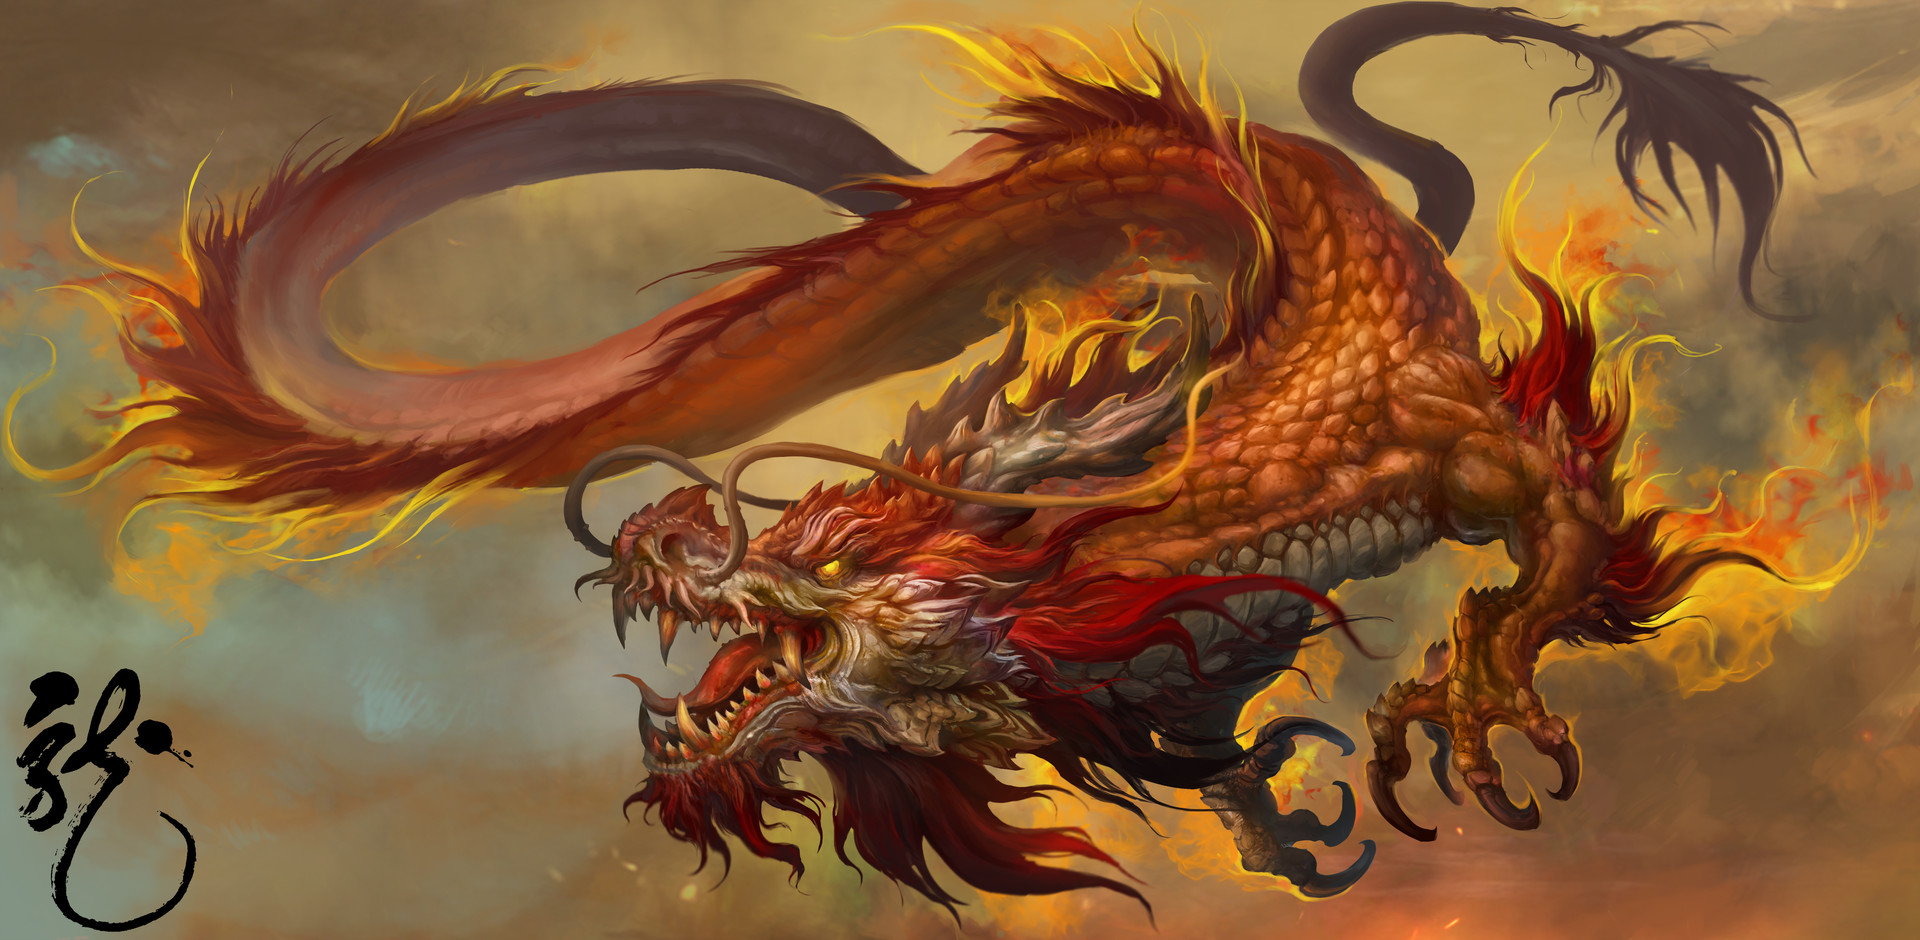 Chinese Dragon Mythology